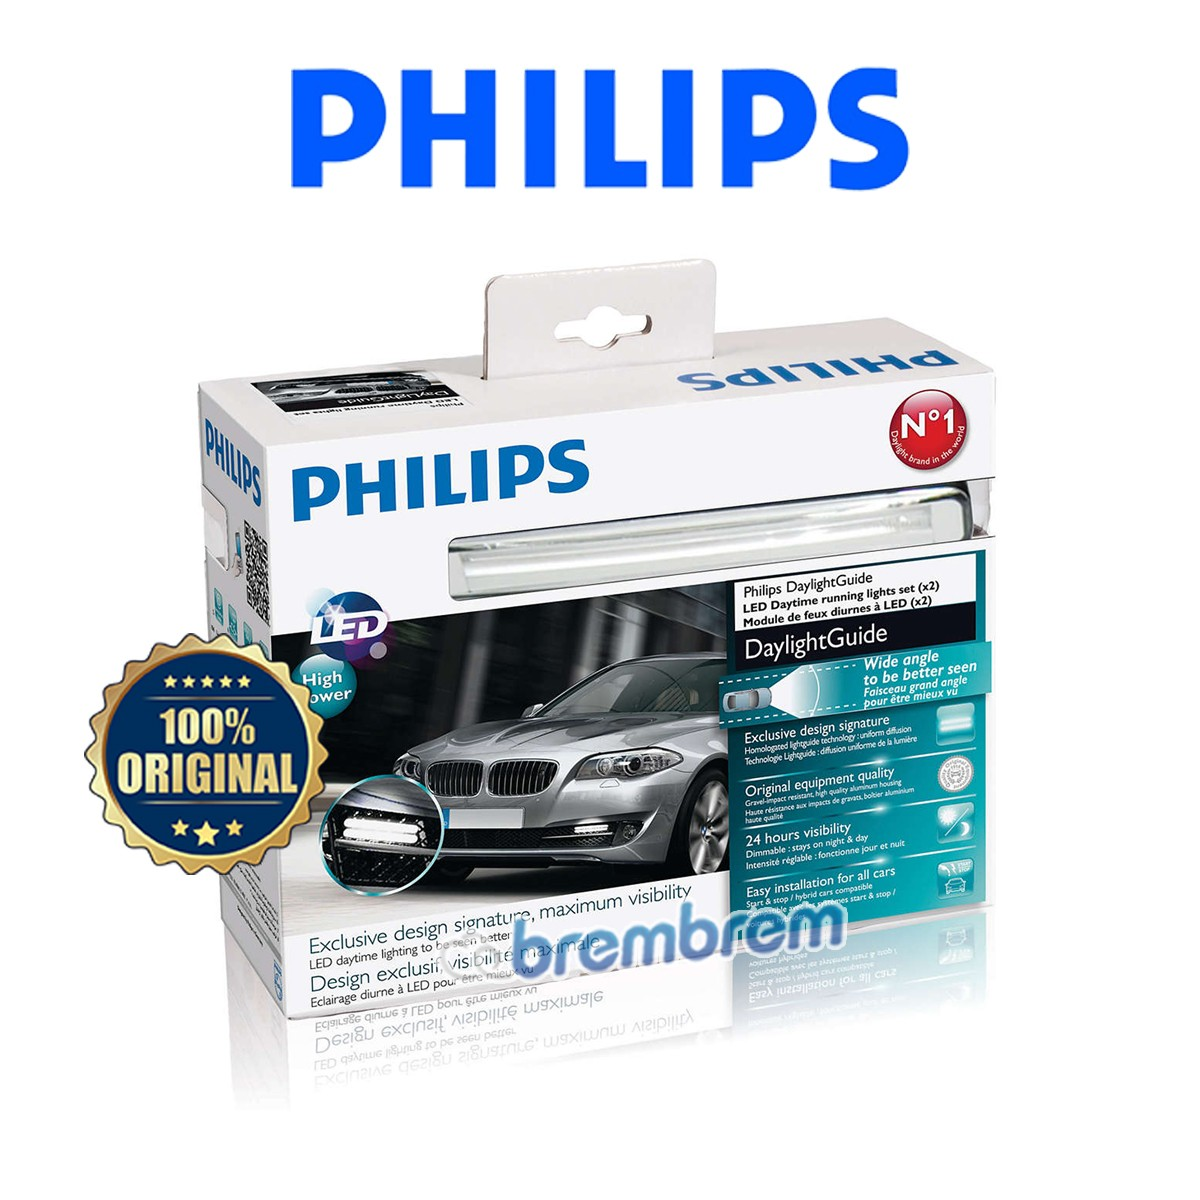 PHILIPS DAY LIGHT GUIDE WLED 12V - LAMPU LED MOBIL